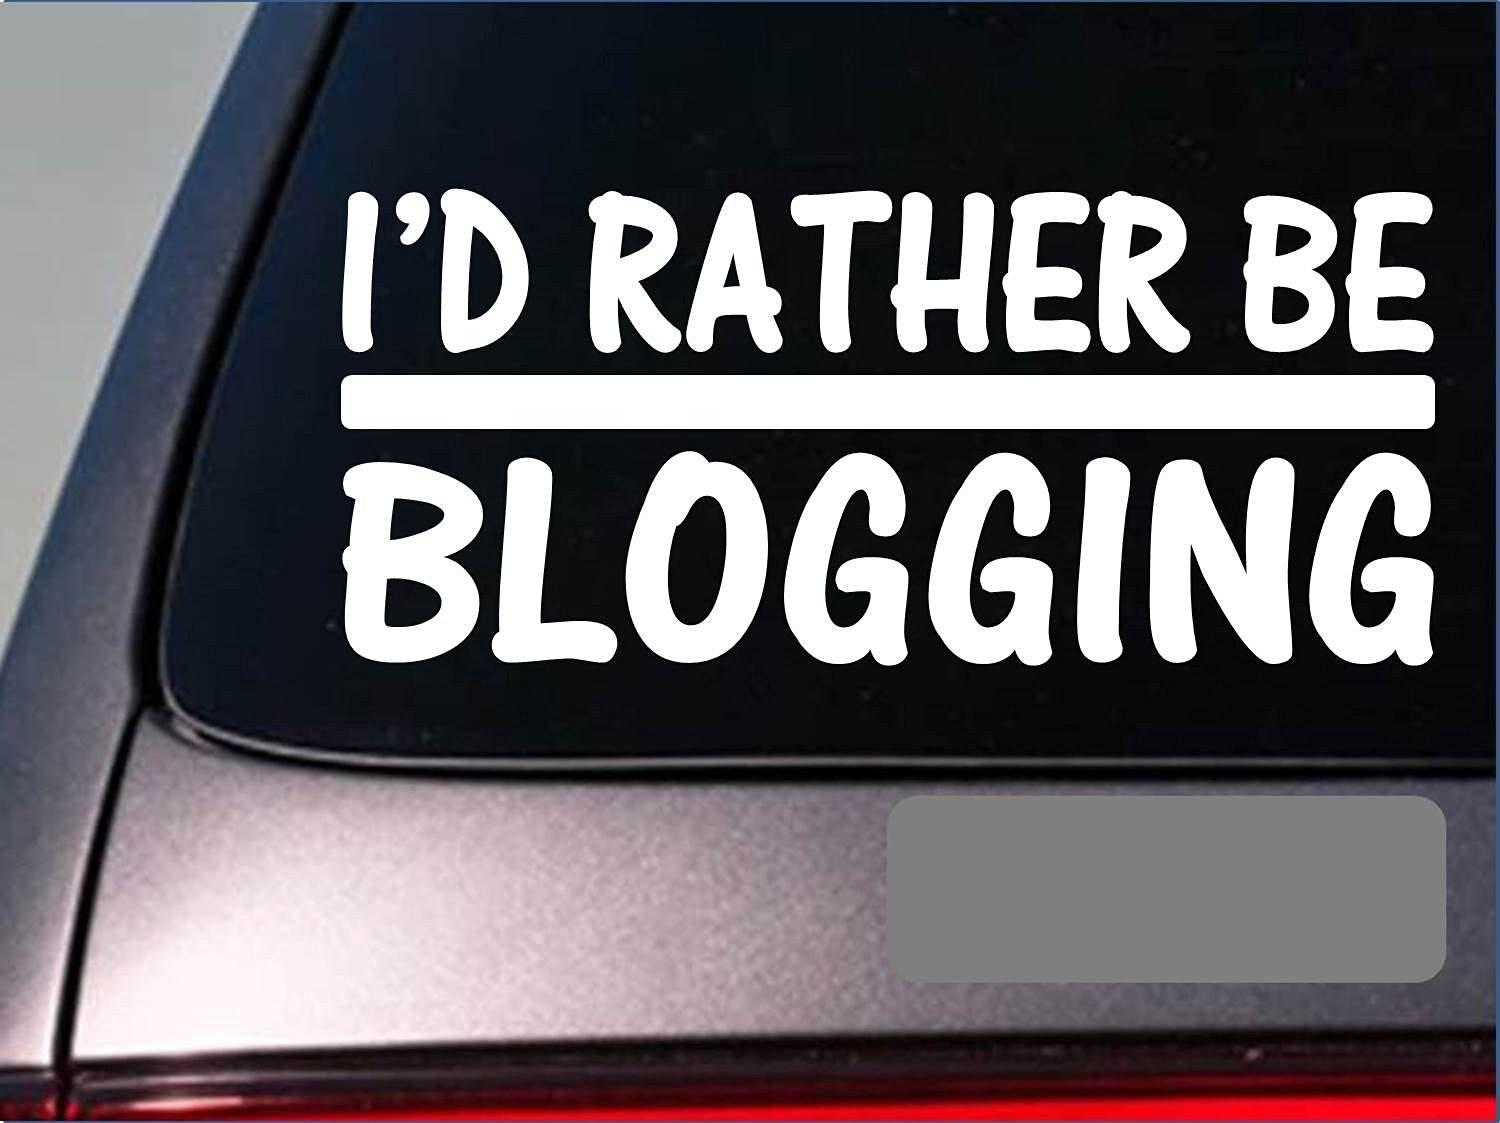 I'd Rather be a Blogging